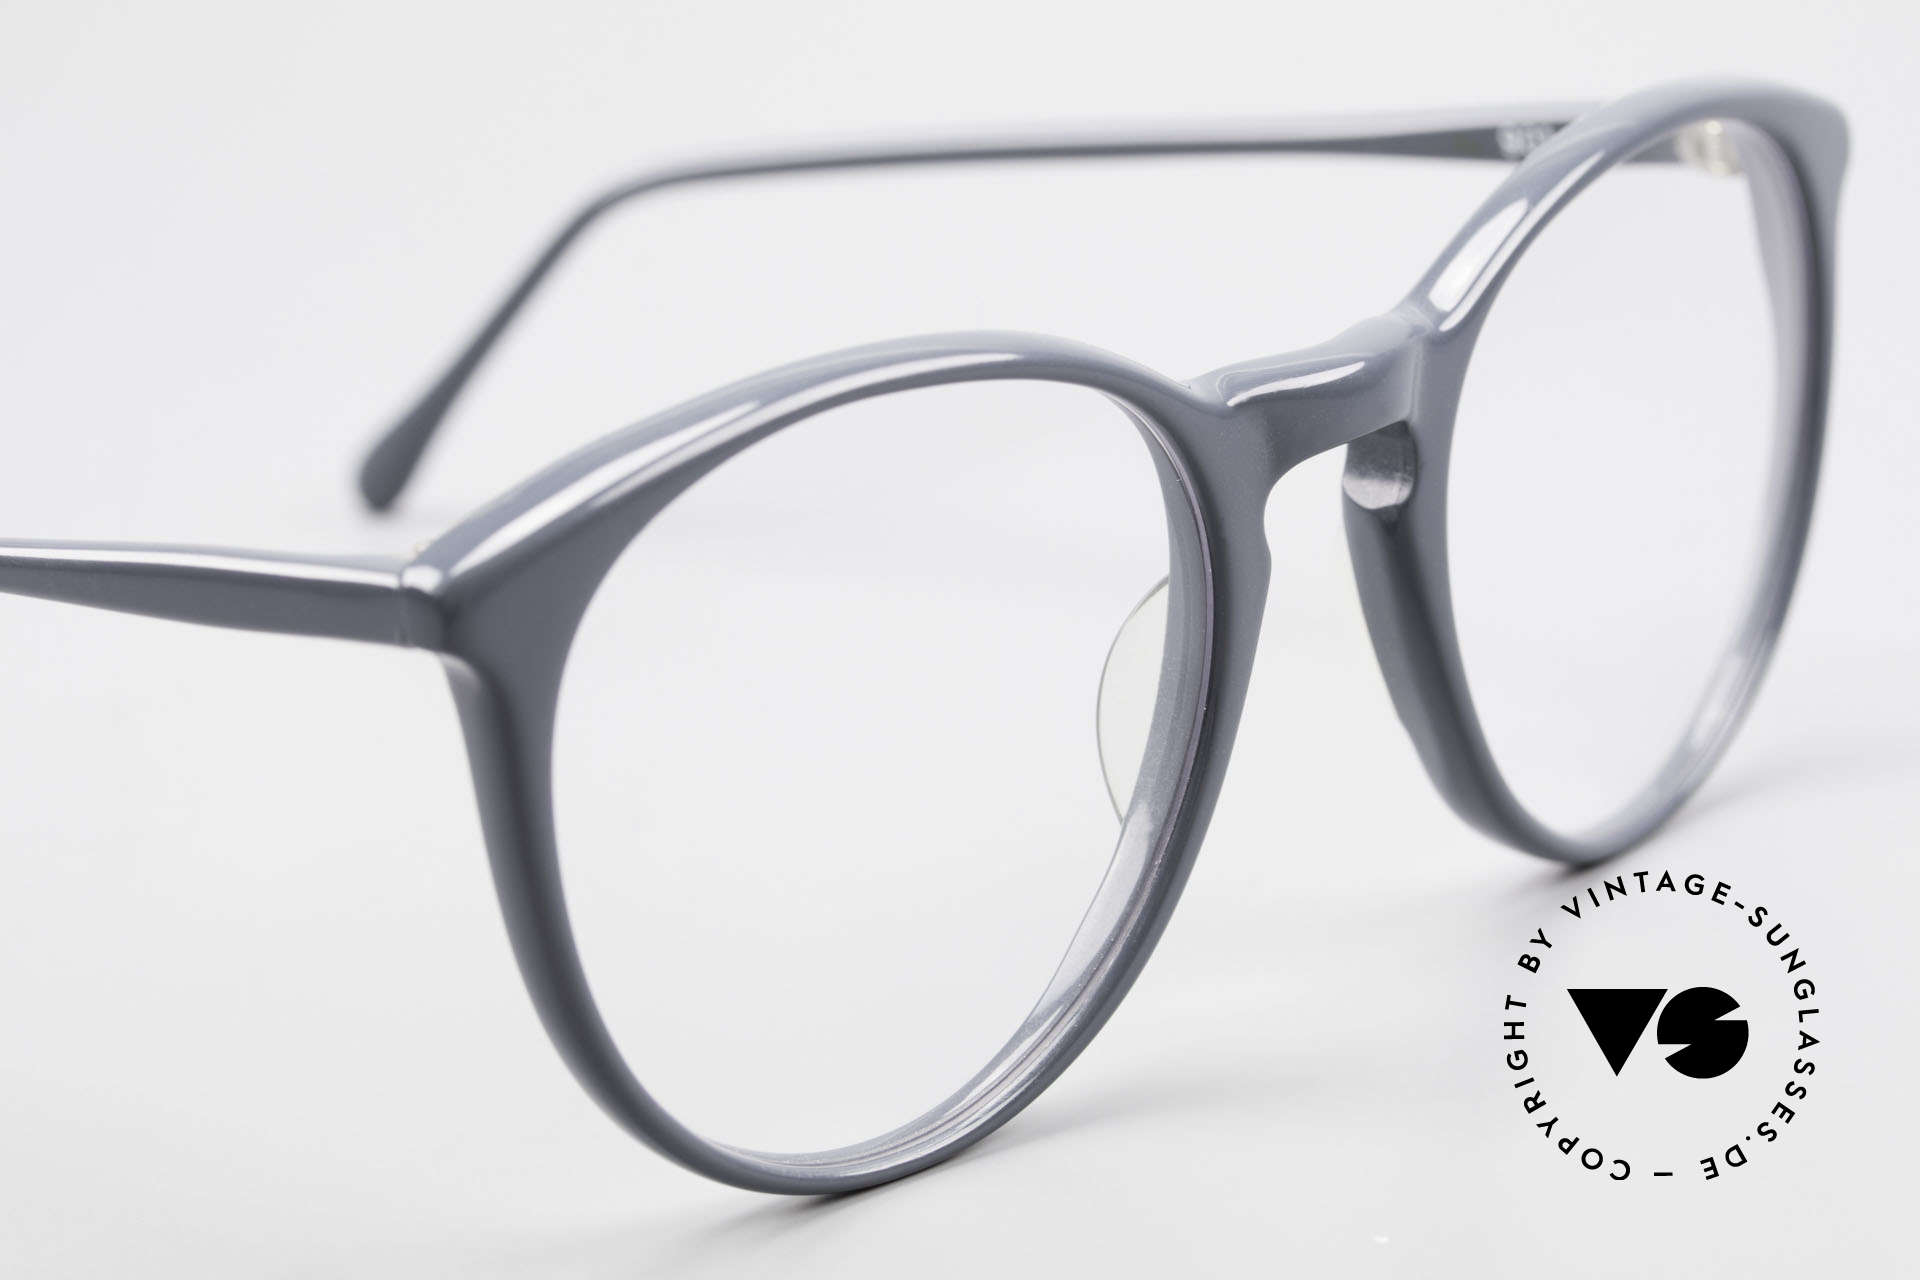 Alain Mikli 901 / 075 No Retro Glasses True Vintage, NO RETRO eyewear, but an old Original from 1989, Made for Men and Women